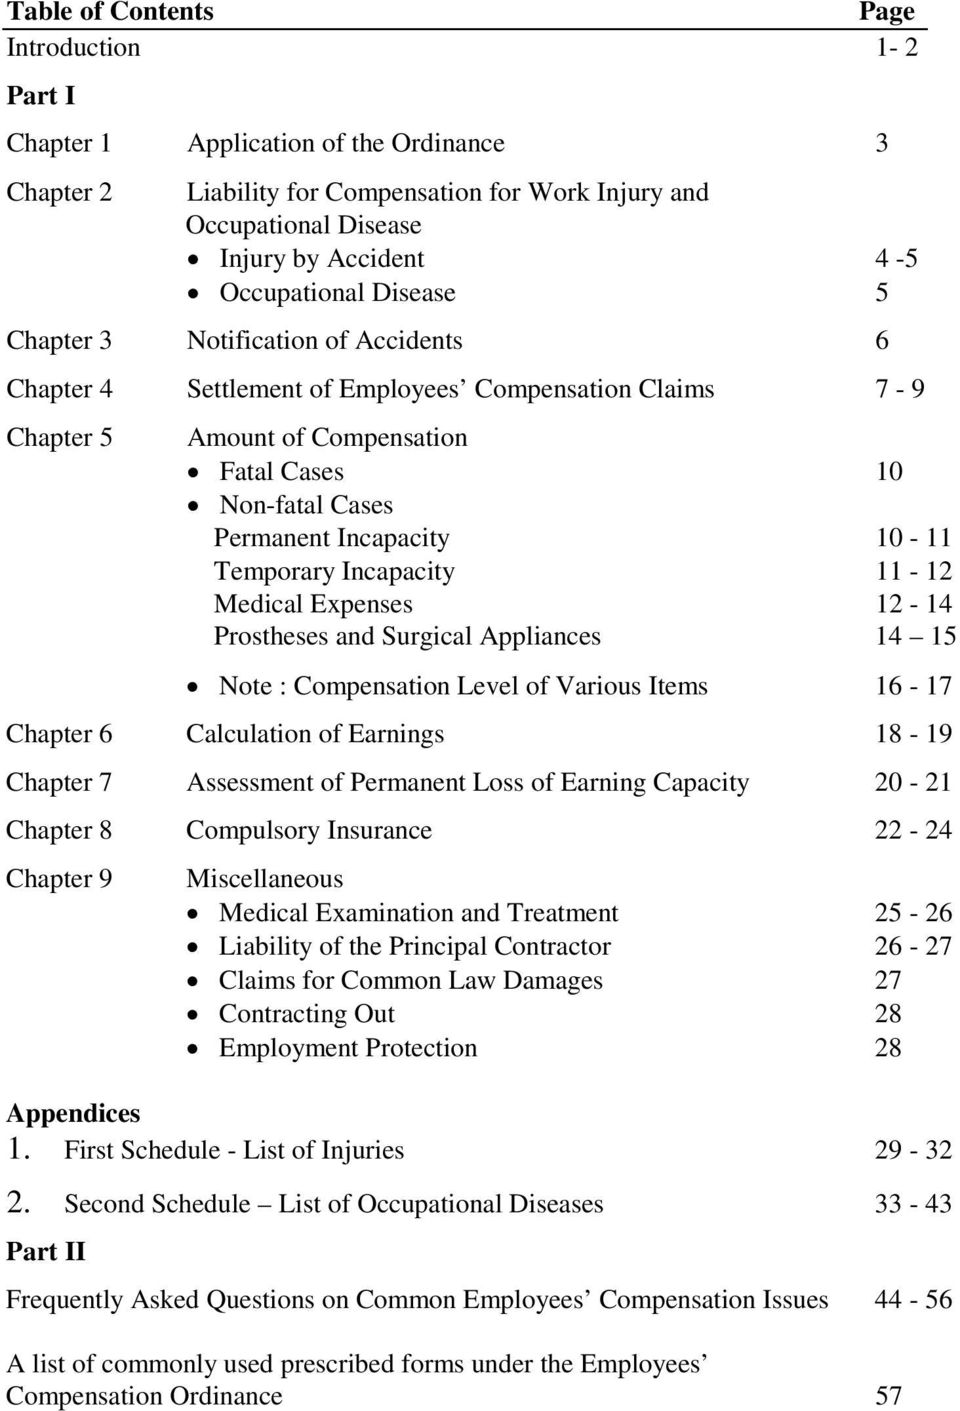 Incapacity 10-11 Temporary Incapacity 11-12 Medical Expenses 12-14 Prostheses and Surgical Appliances 14 15 Note : Compensation Level of Various Items 16-17 Chapter 6 Calculation of Earnings 18-19